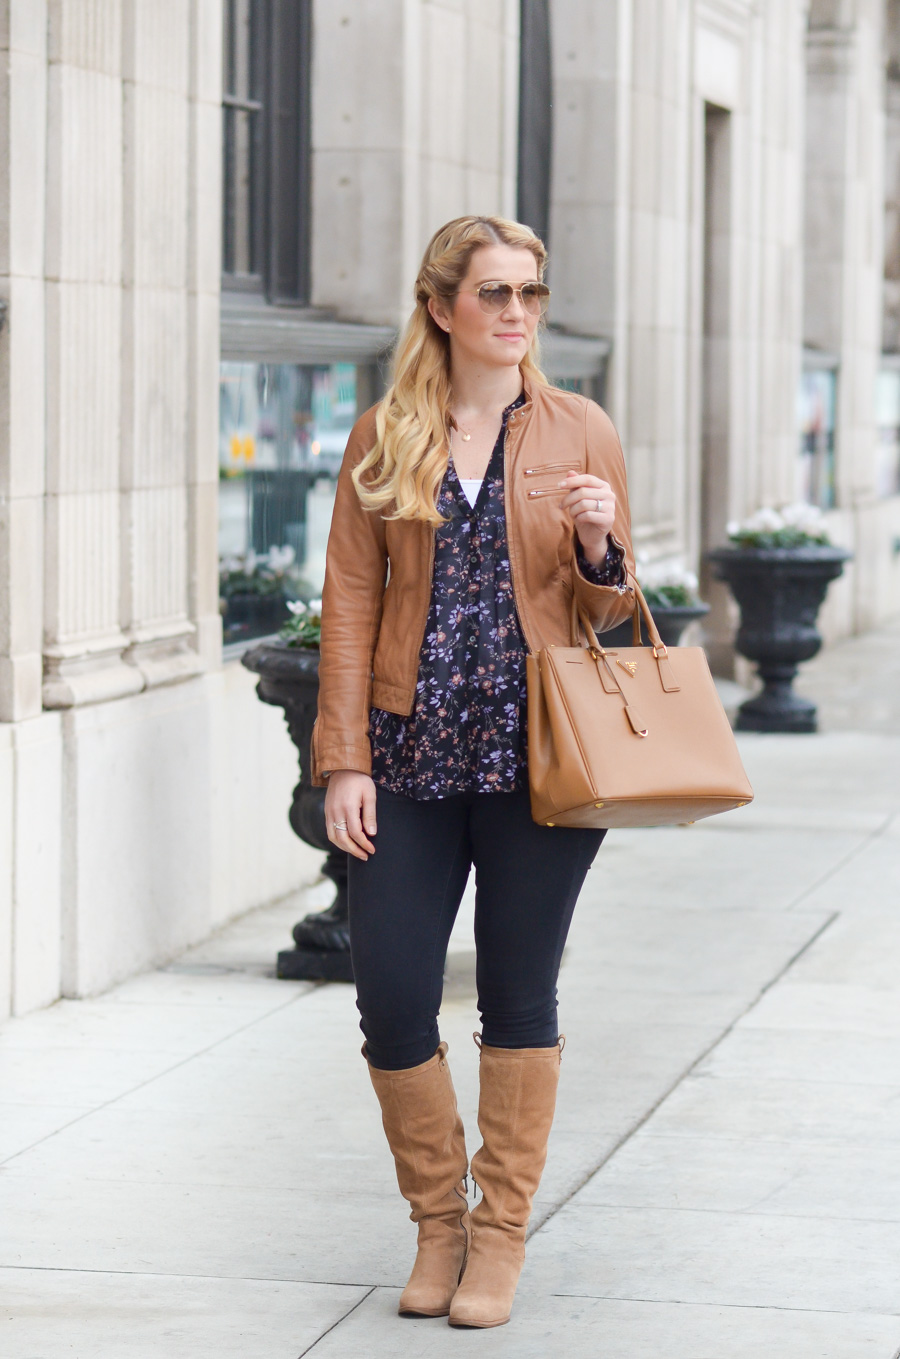 Tan Boots with Black Jeans Women's Outfit